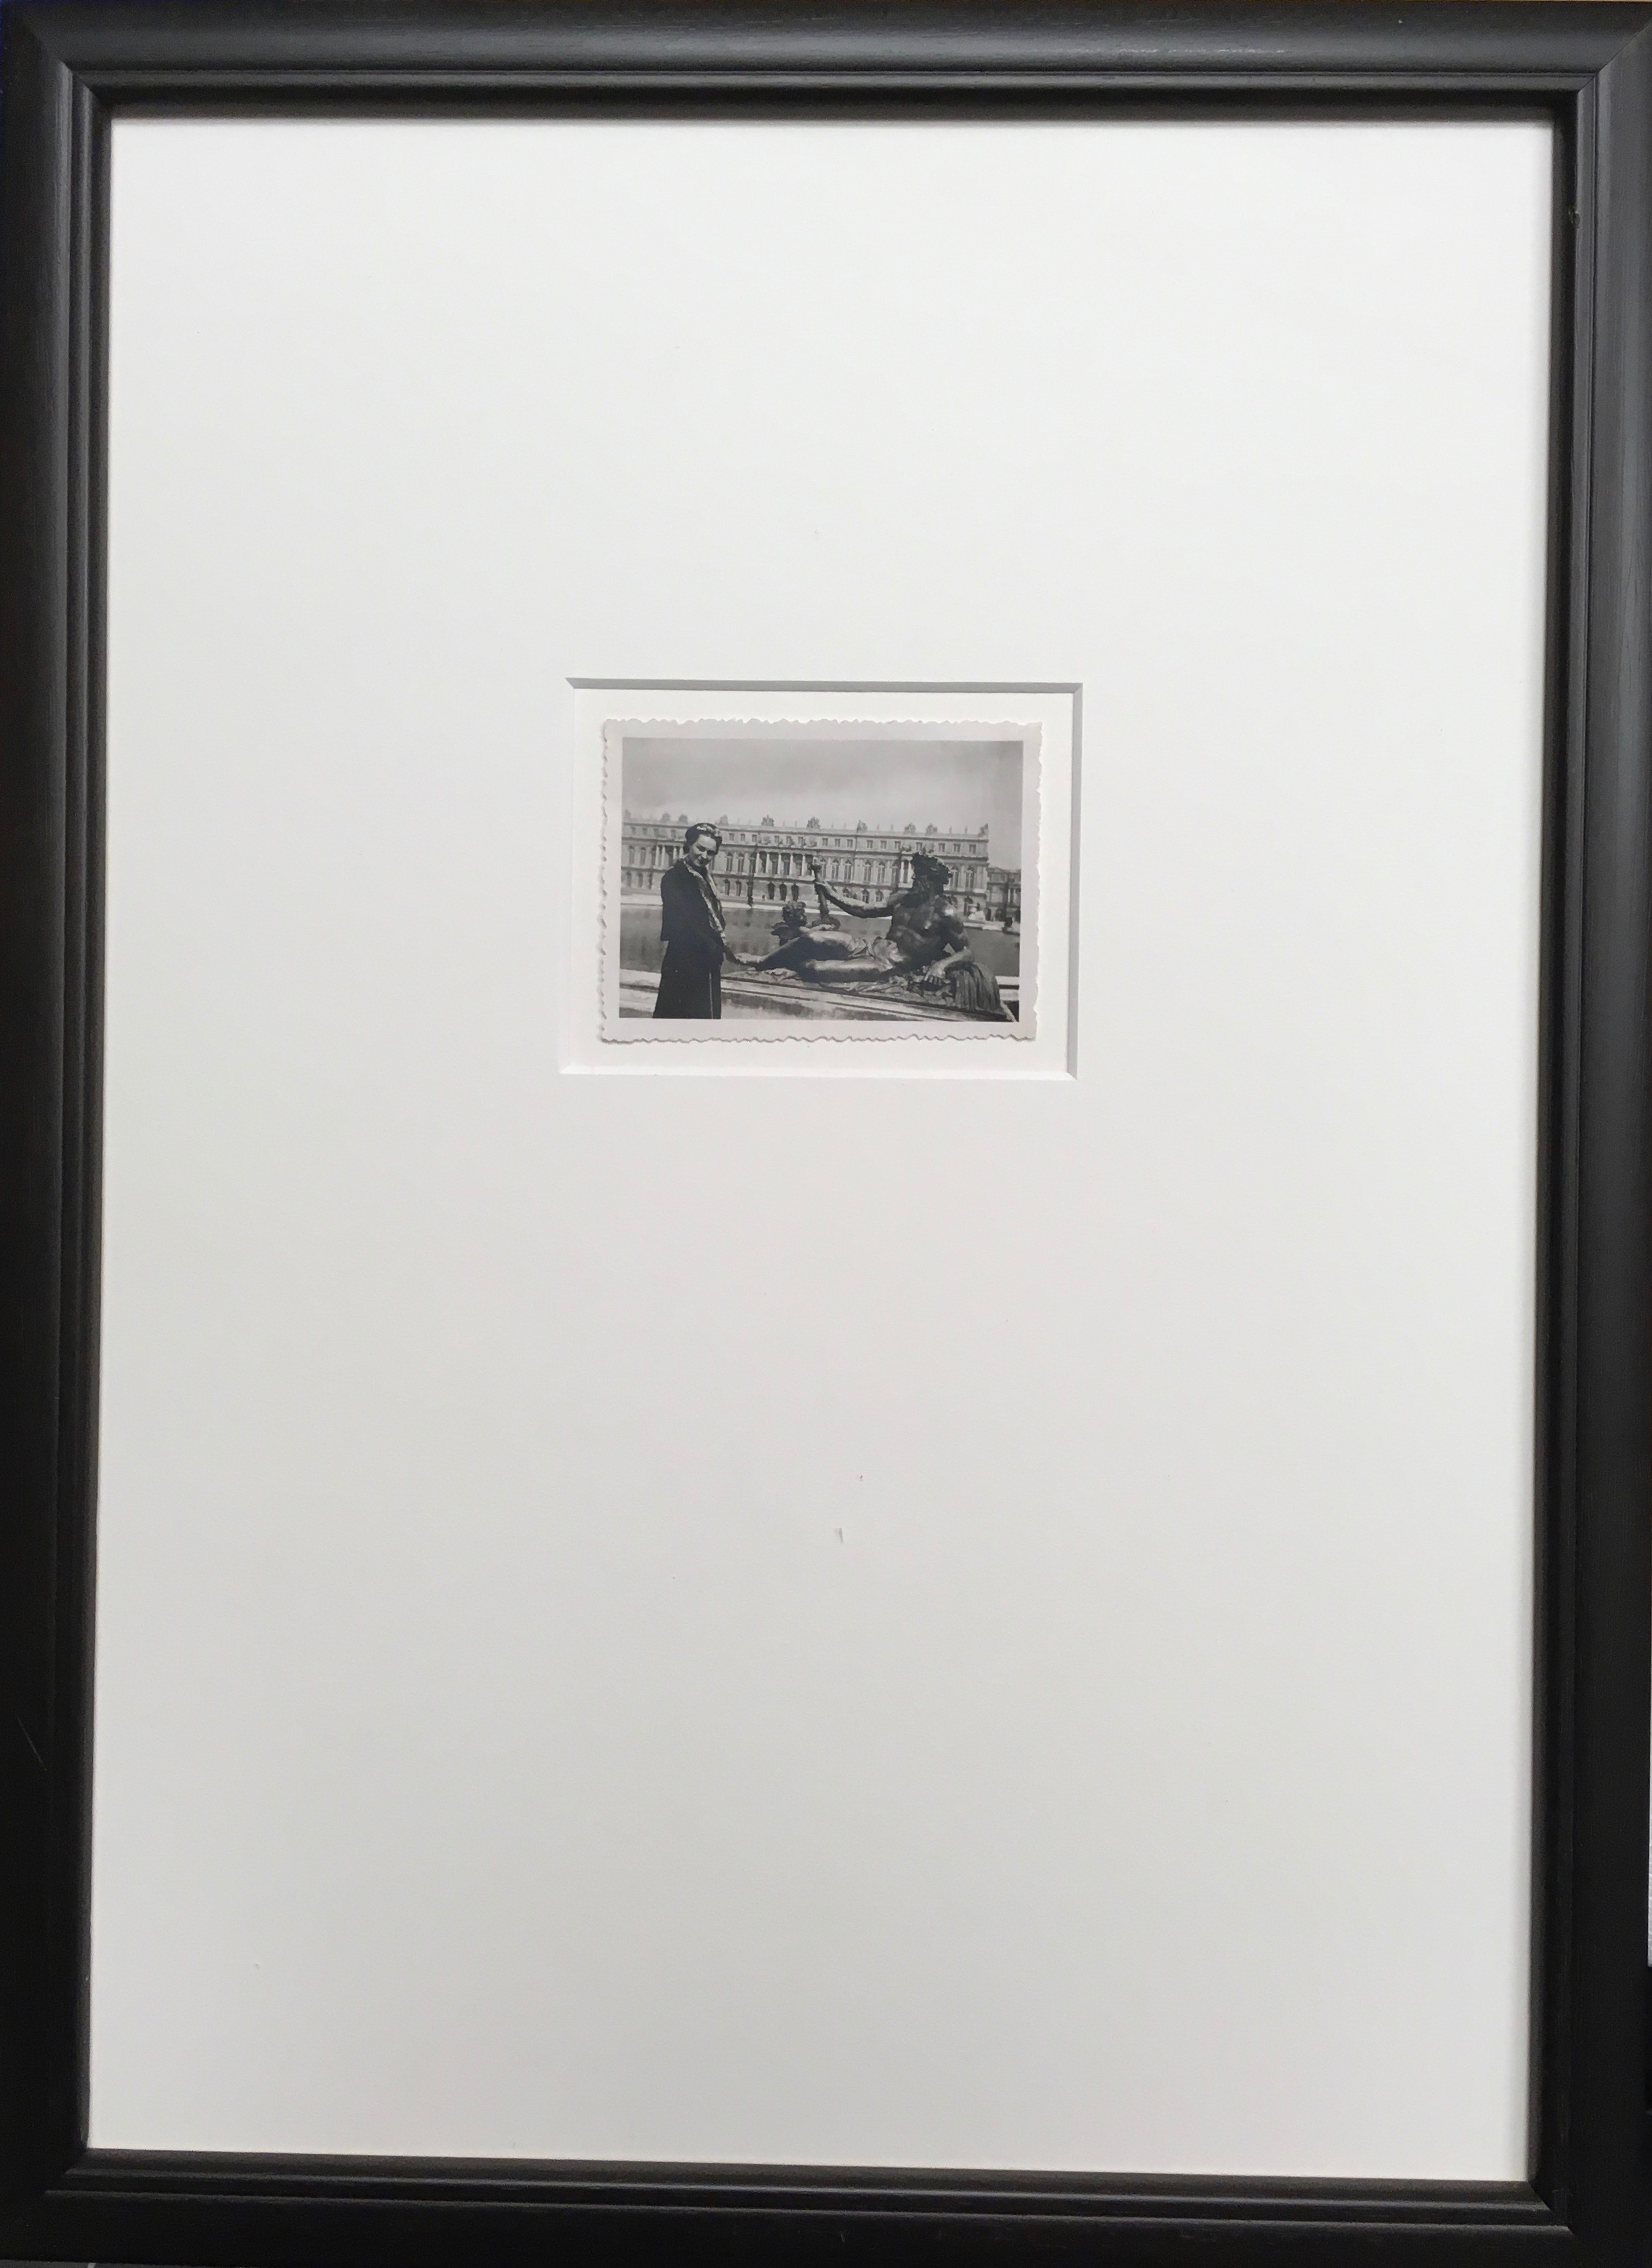 Georgette Magritte framed view